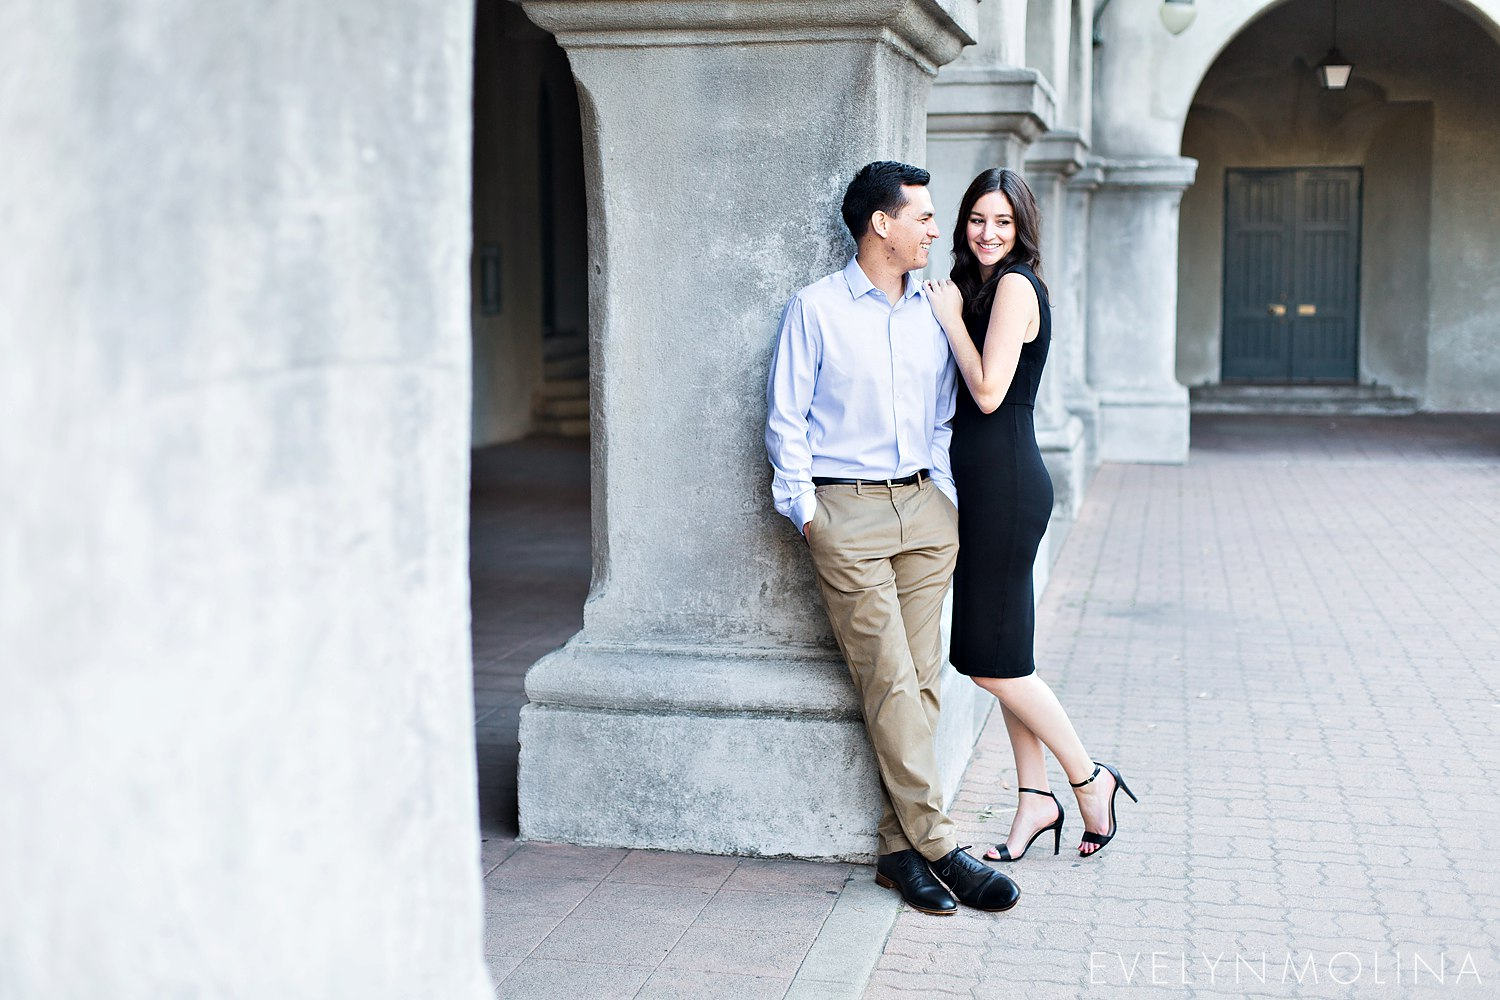 Balboa Park Engagement Session - Kristen and Justin_0016.jpg